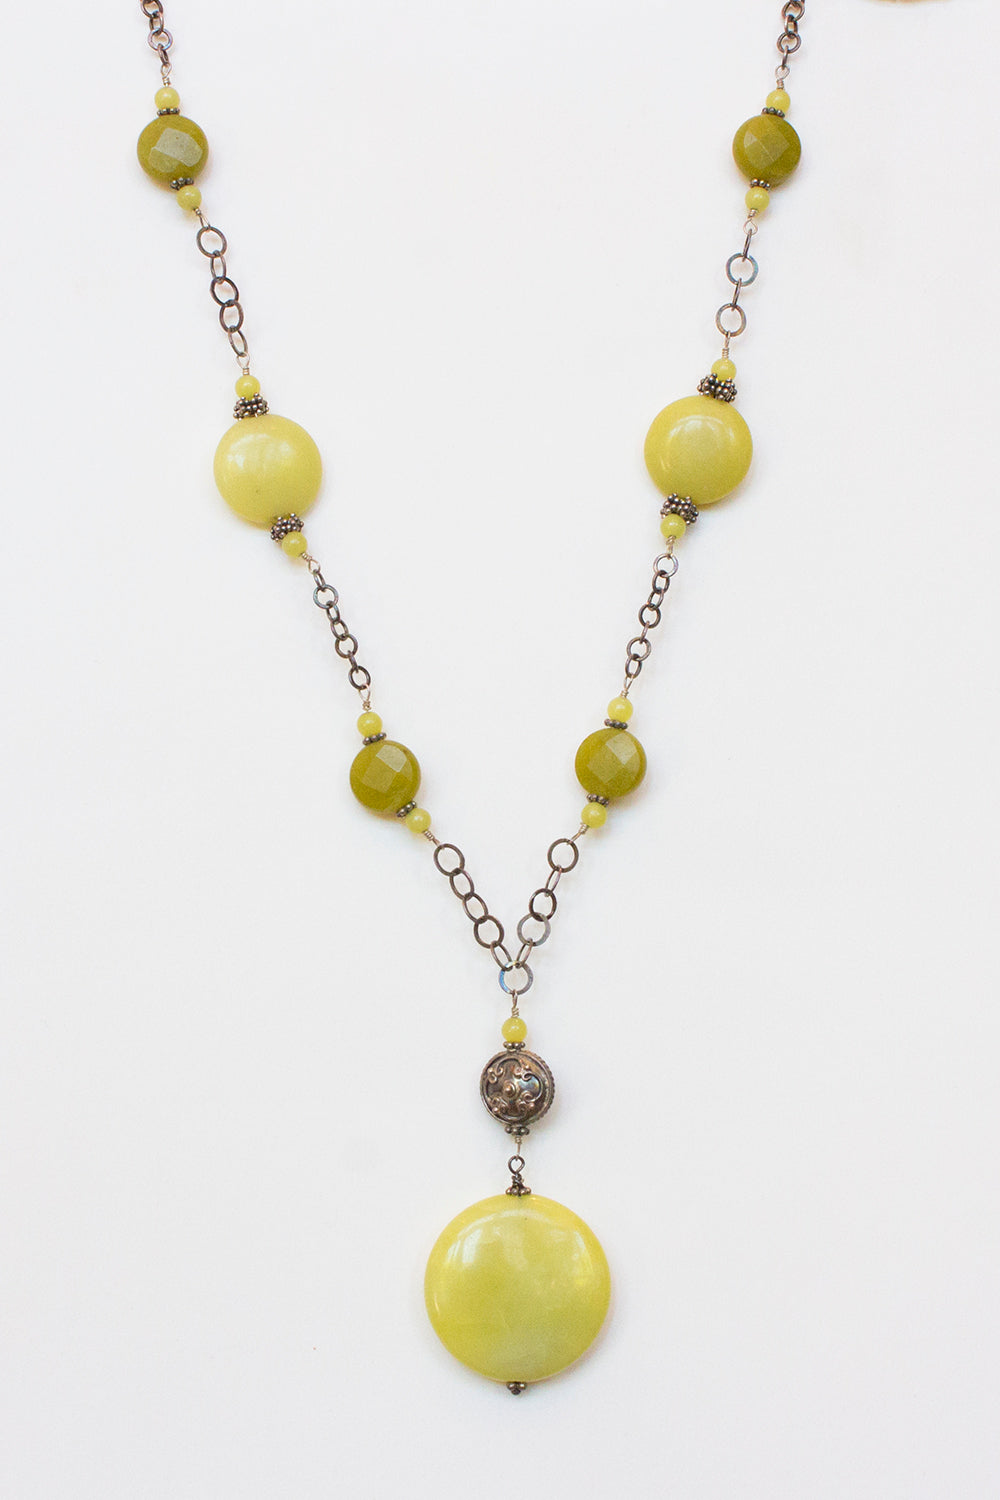 Lemon & Olive Jade Necklace